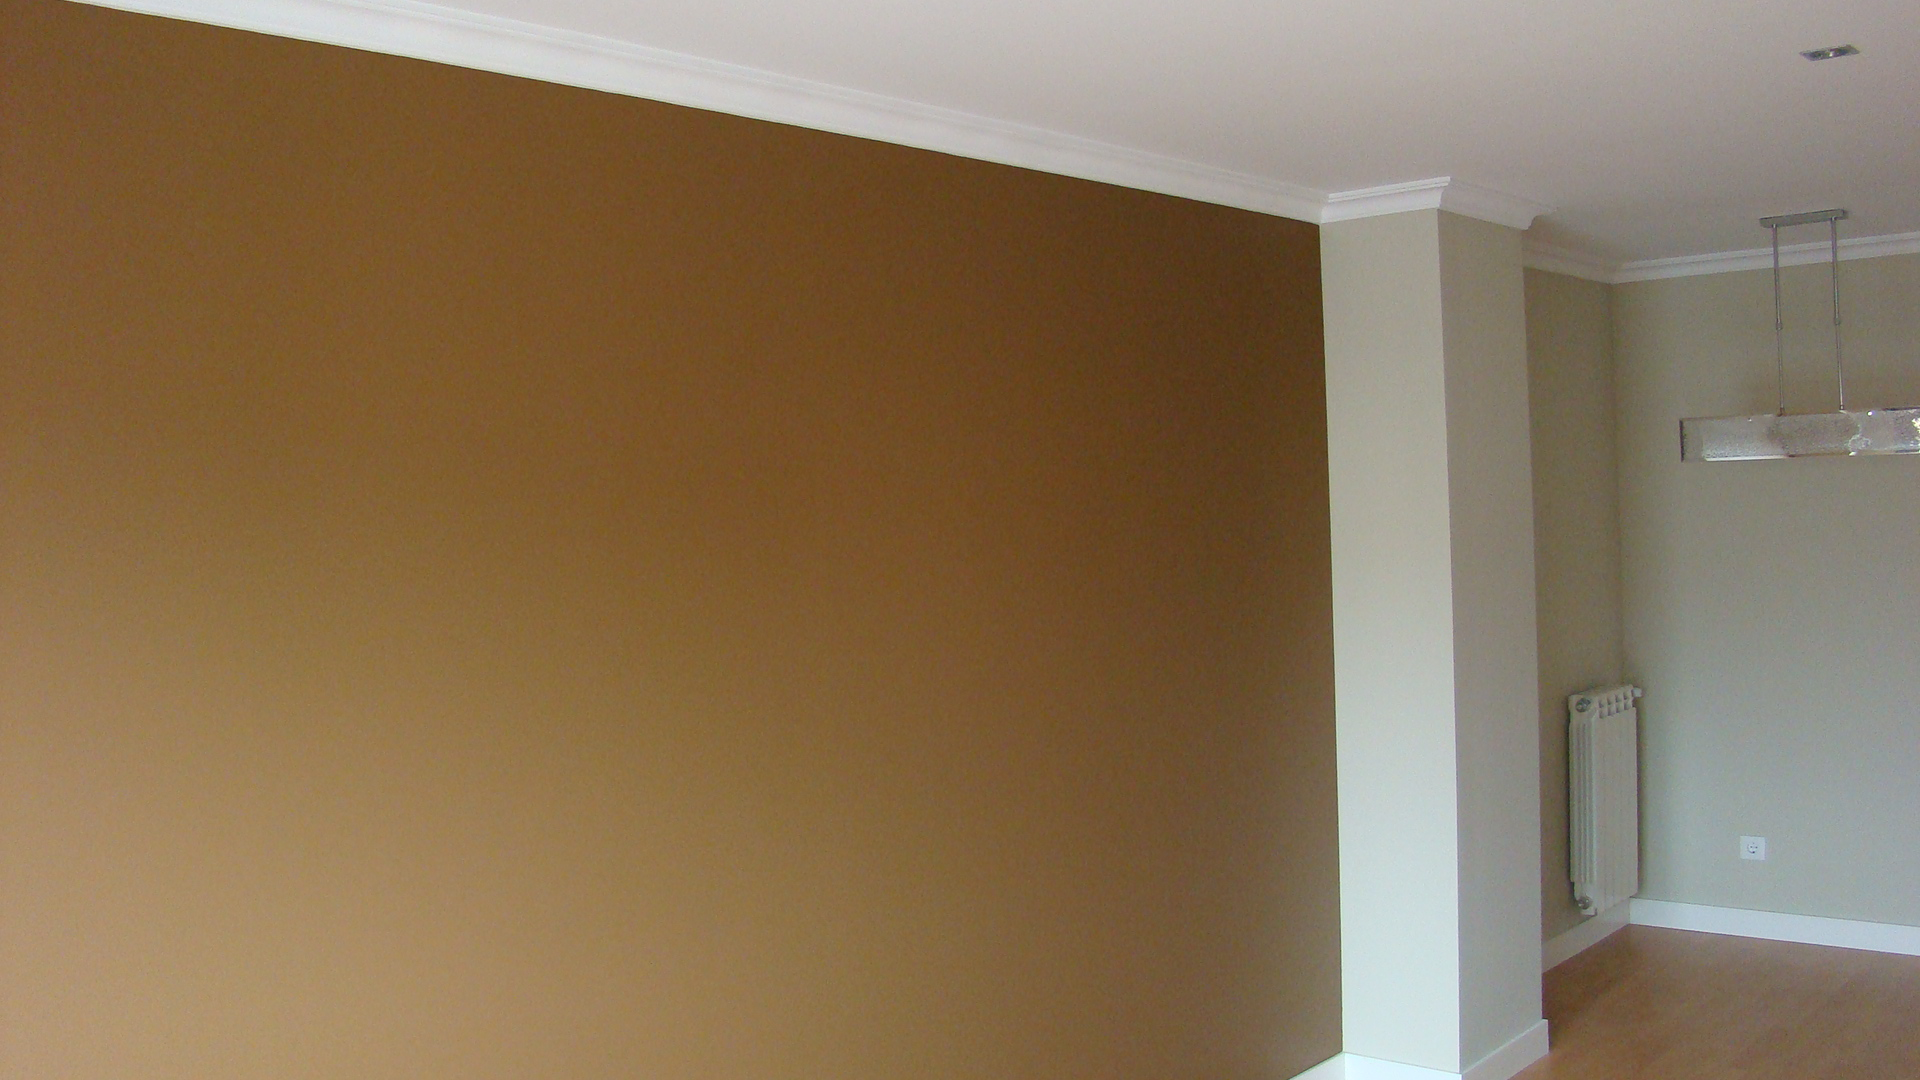 Pintura Color Beige Pintura Plastica Color Beige Y Chocolate Pintores En